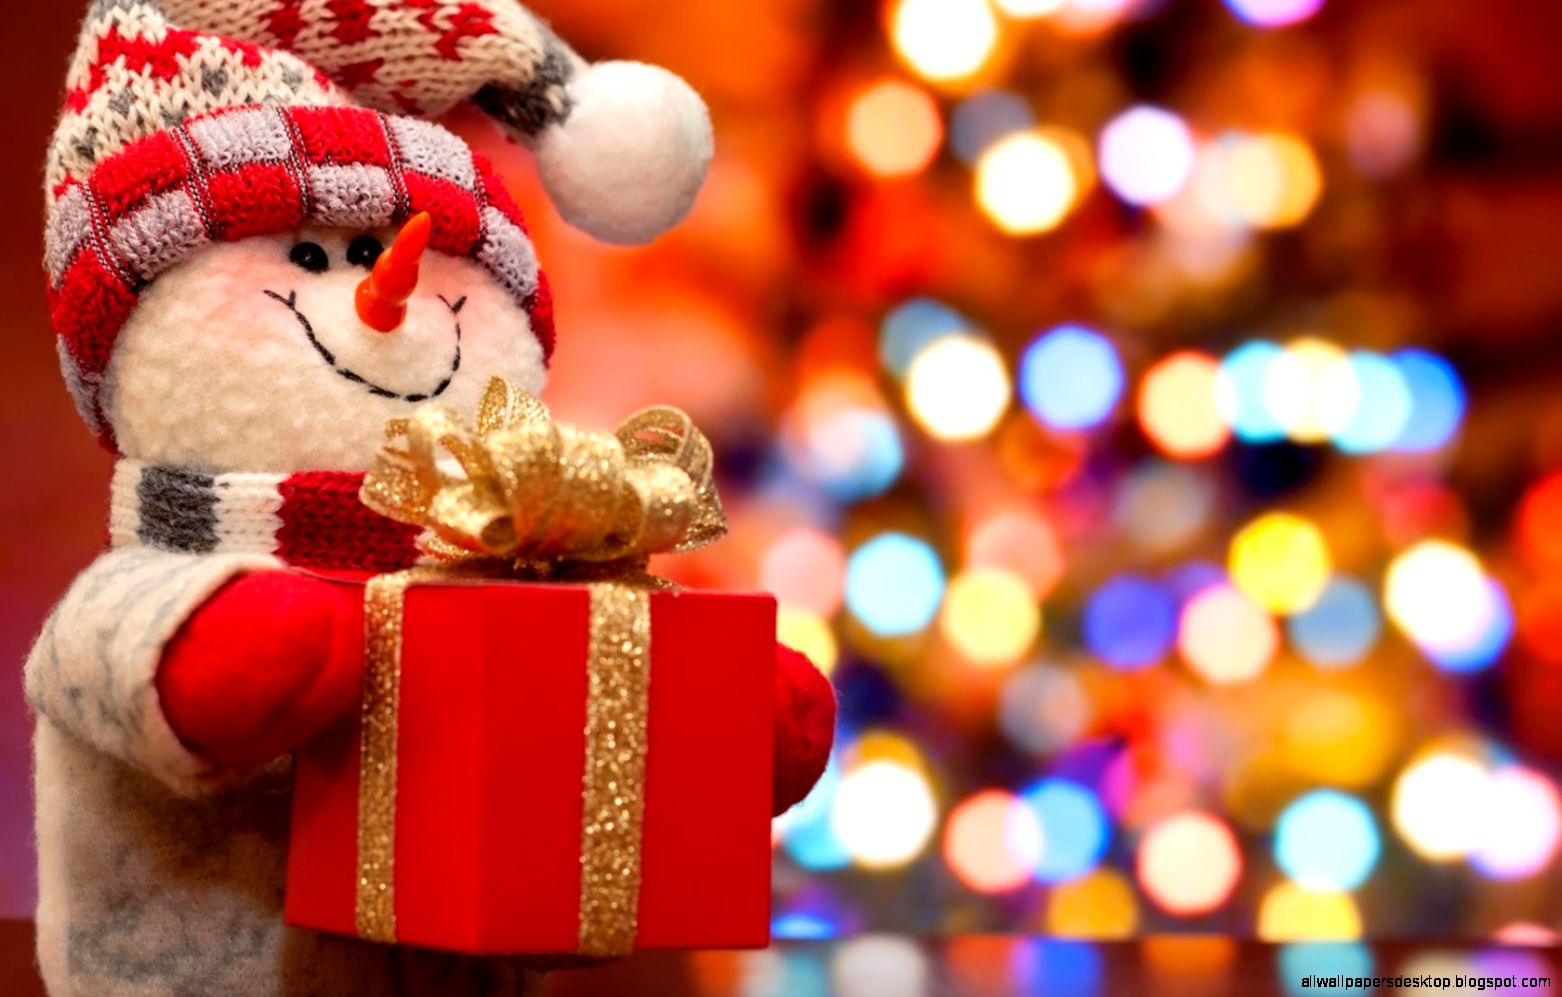 Snowman Christmas Tree New Year Gift   HD wallpapers